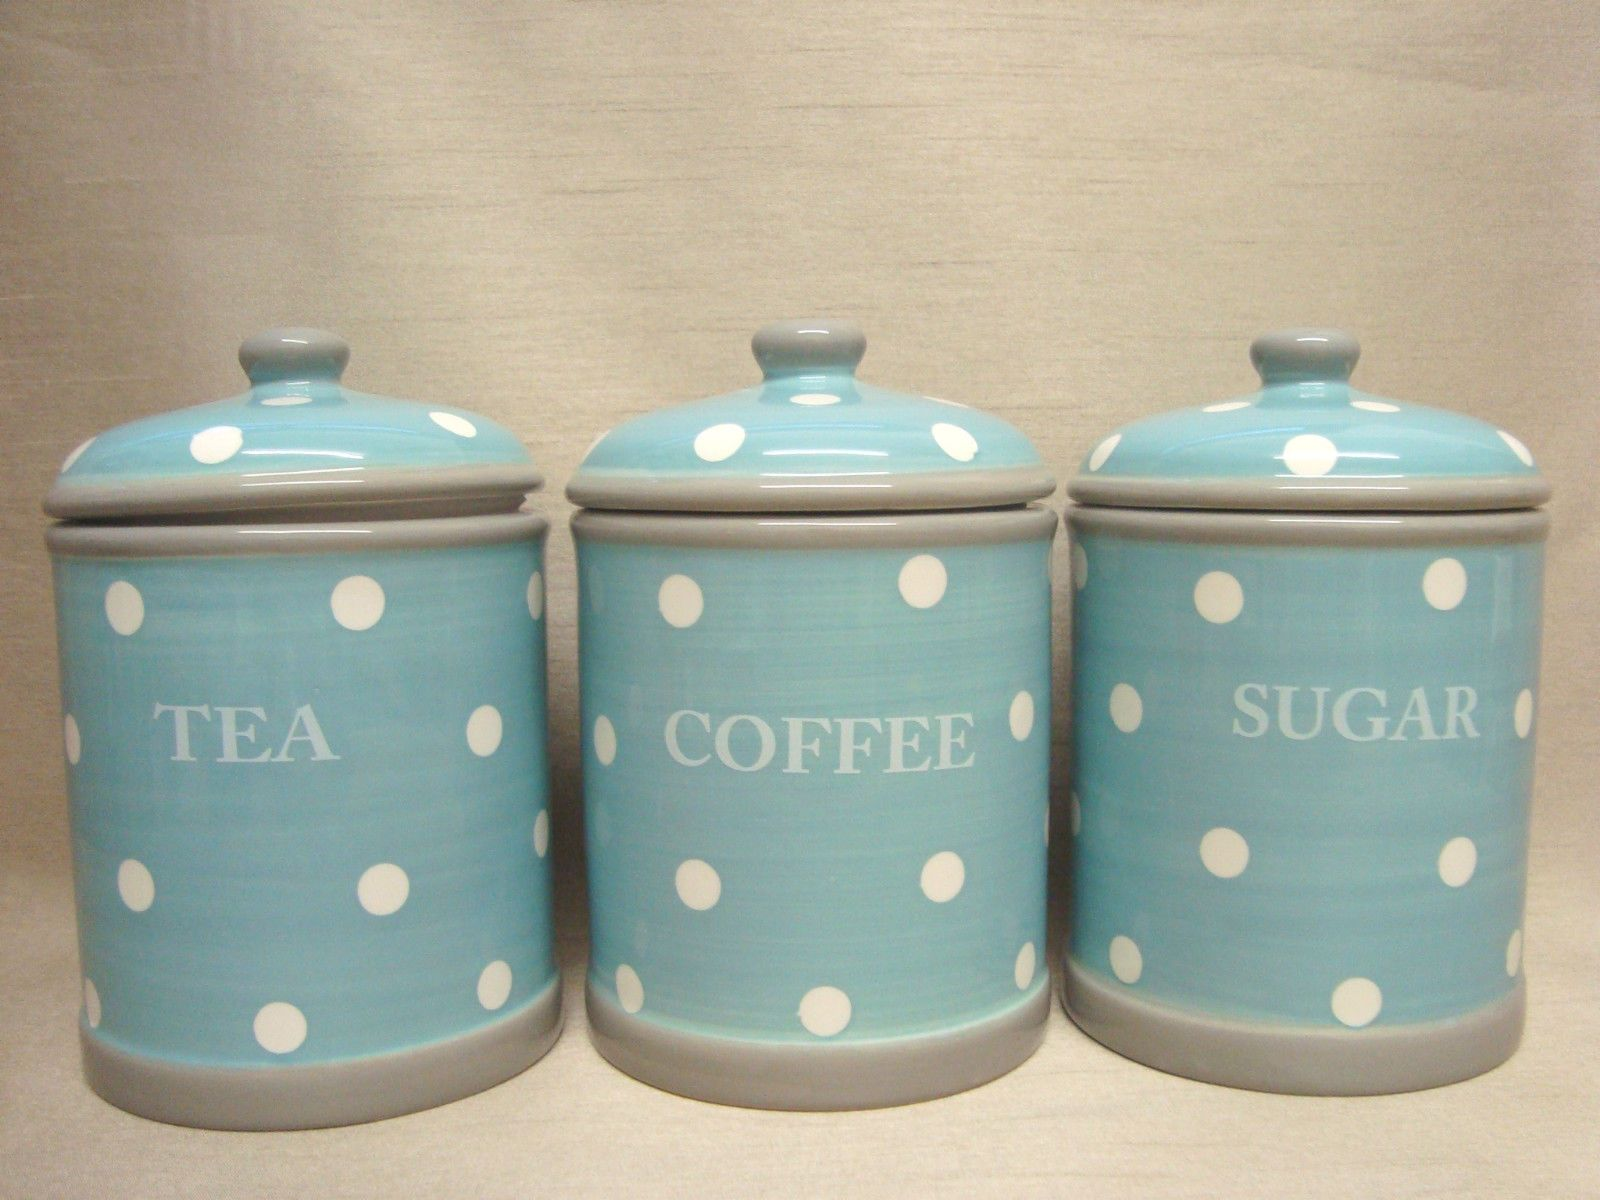 Duck Egg Blue White Polka Dots Ceramic Tea Coffee Sugar Jars